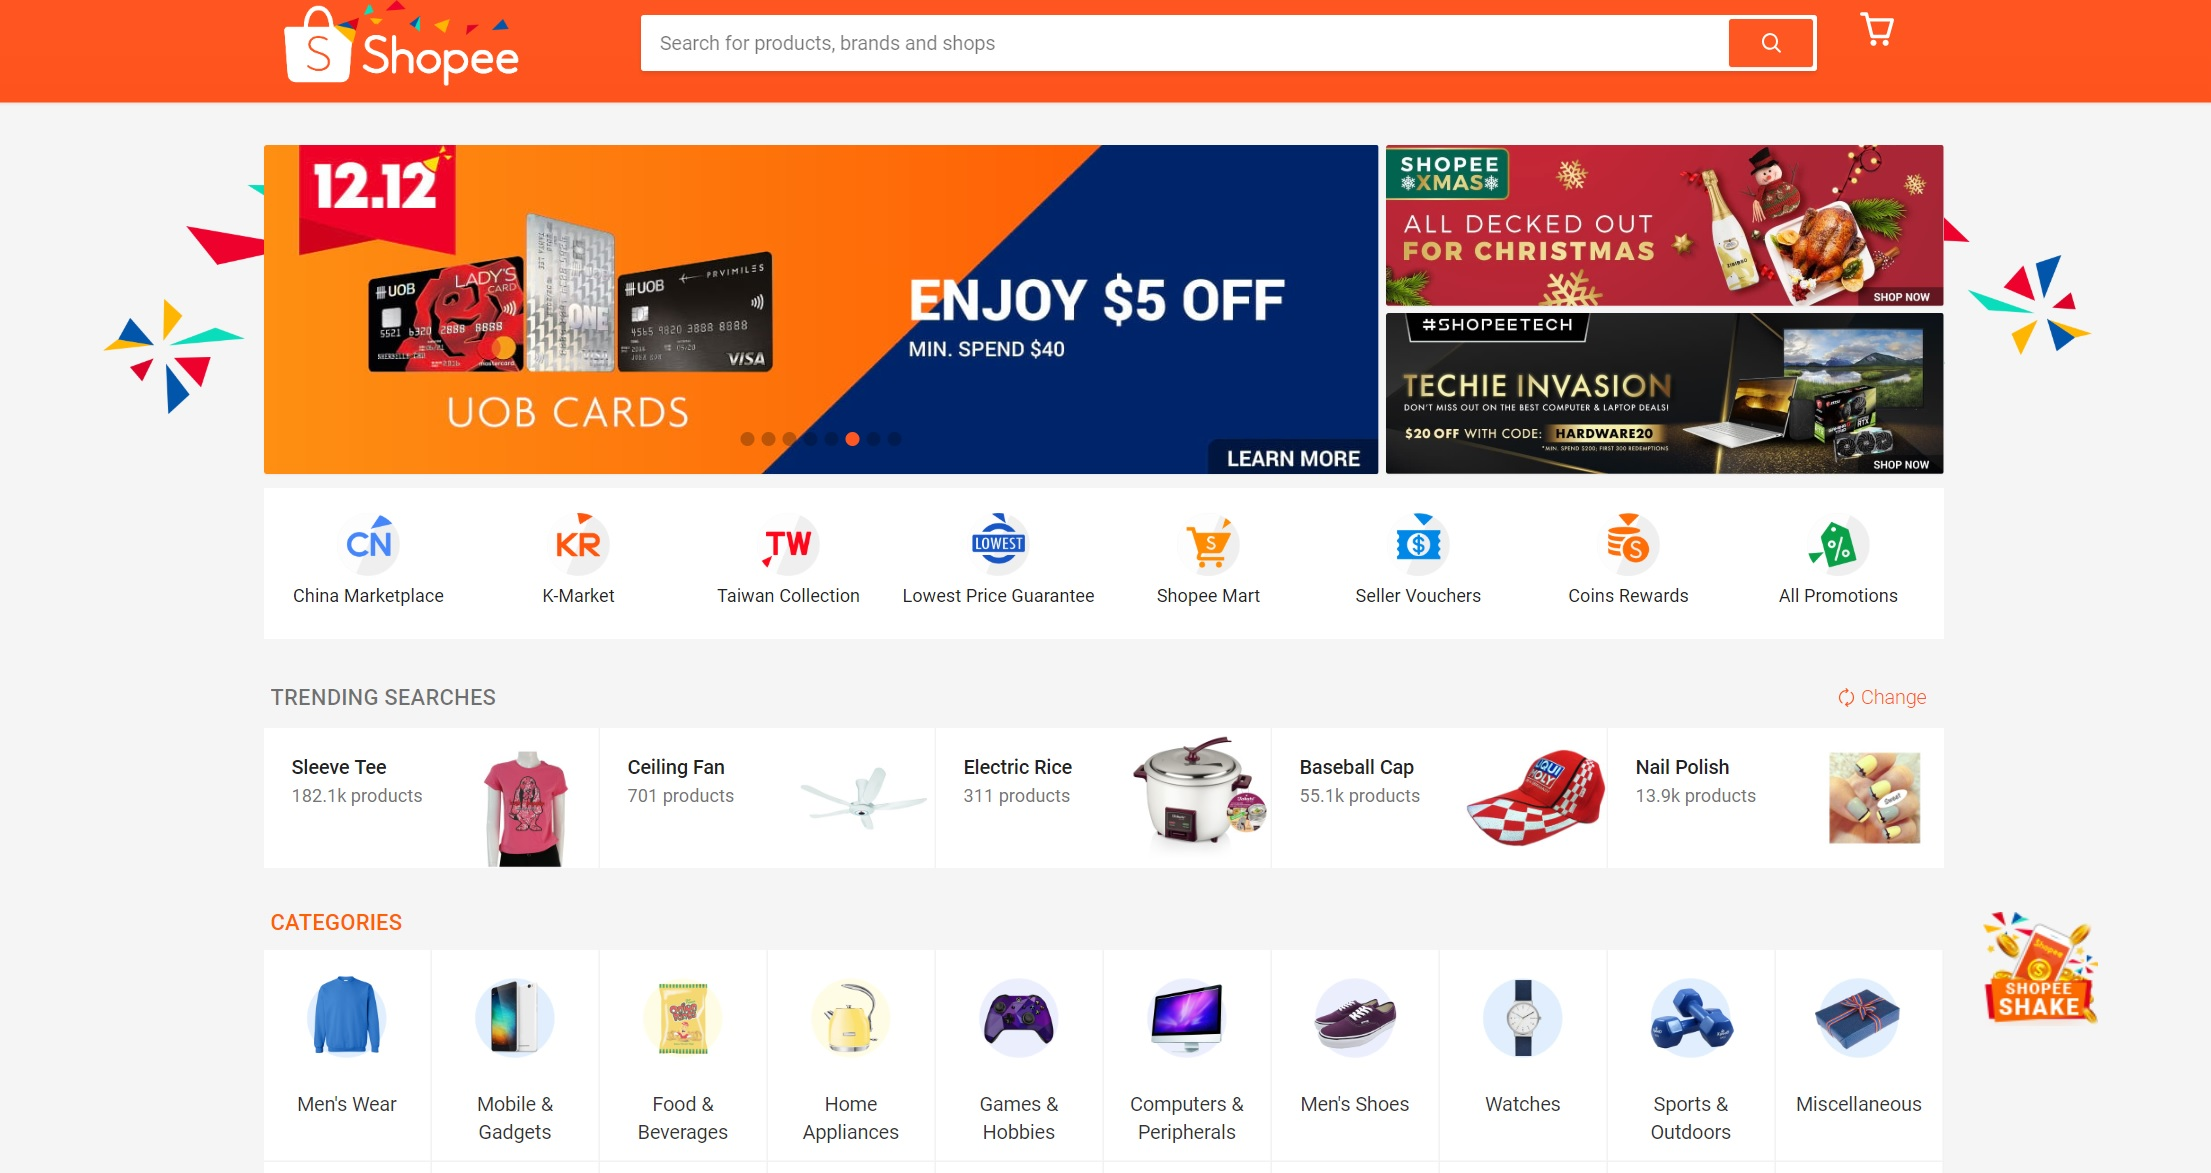 9 9 Sale | Shopee Promo Code, LATEST Discount Code 2019